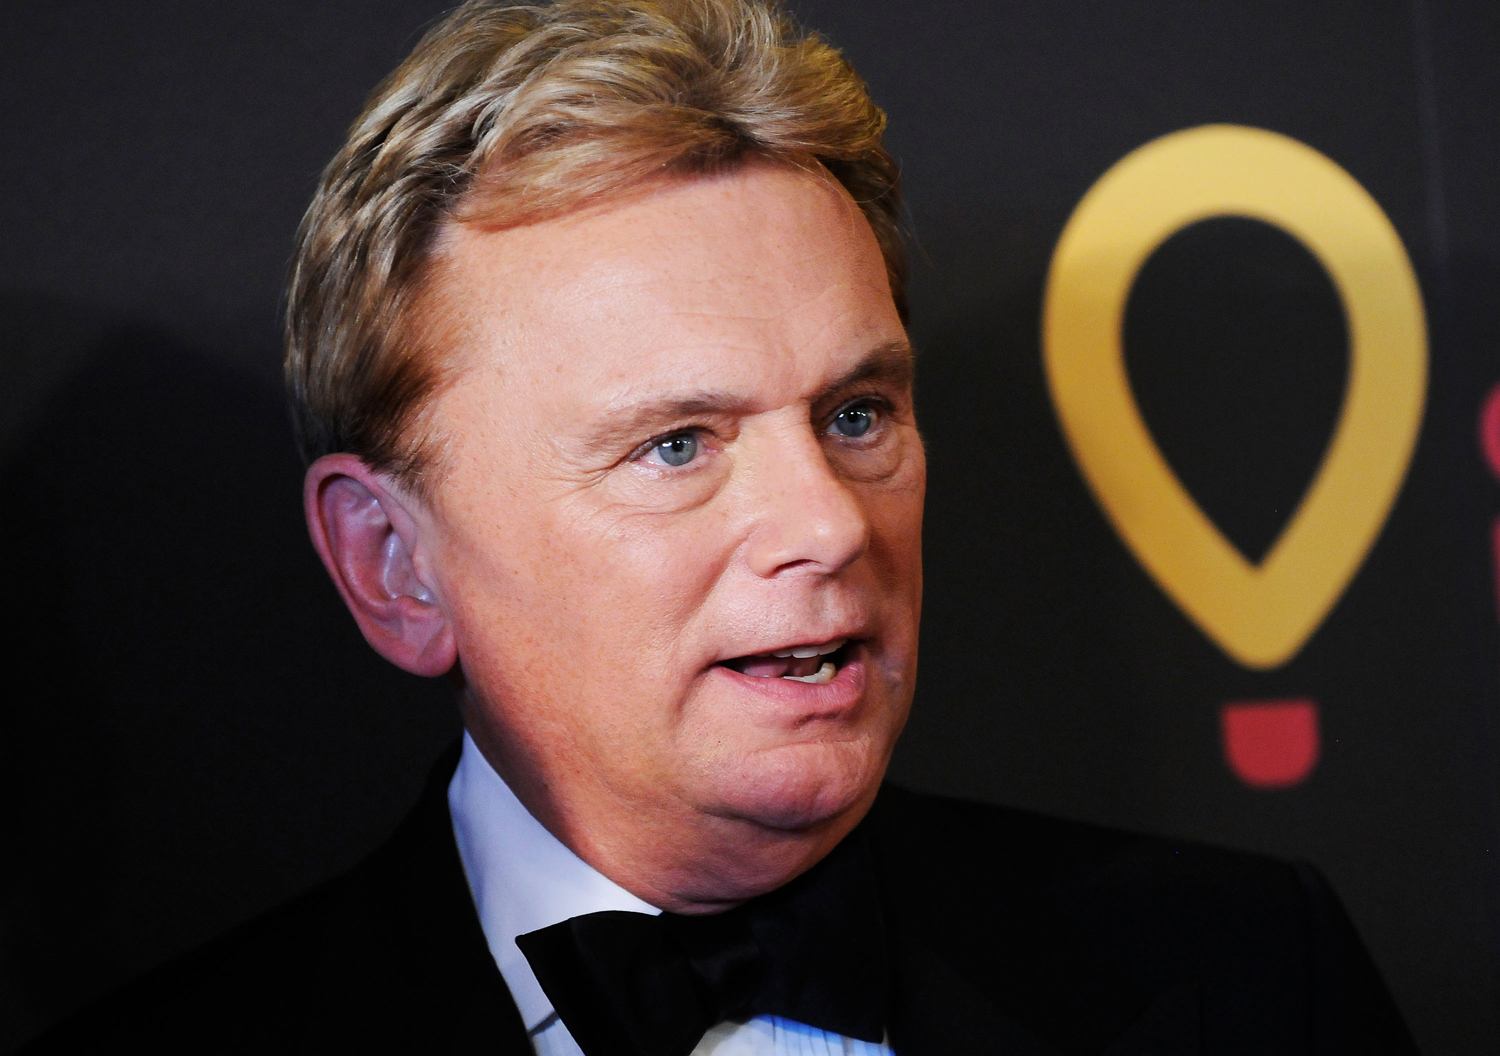 Game-show host Pat Sajak arrives at the 38th Annual Daytime Entertainment Emmy Awards held at the Las Vegas Hilton on June 19, 2011